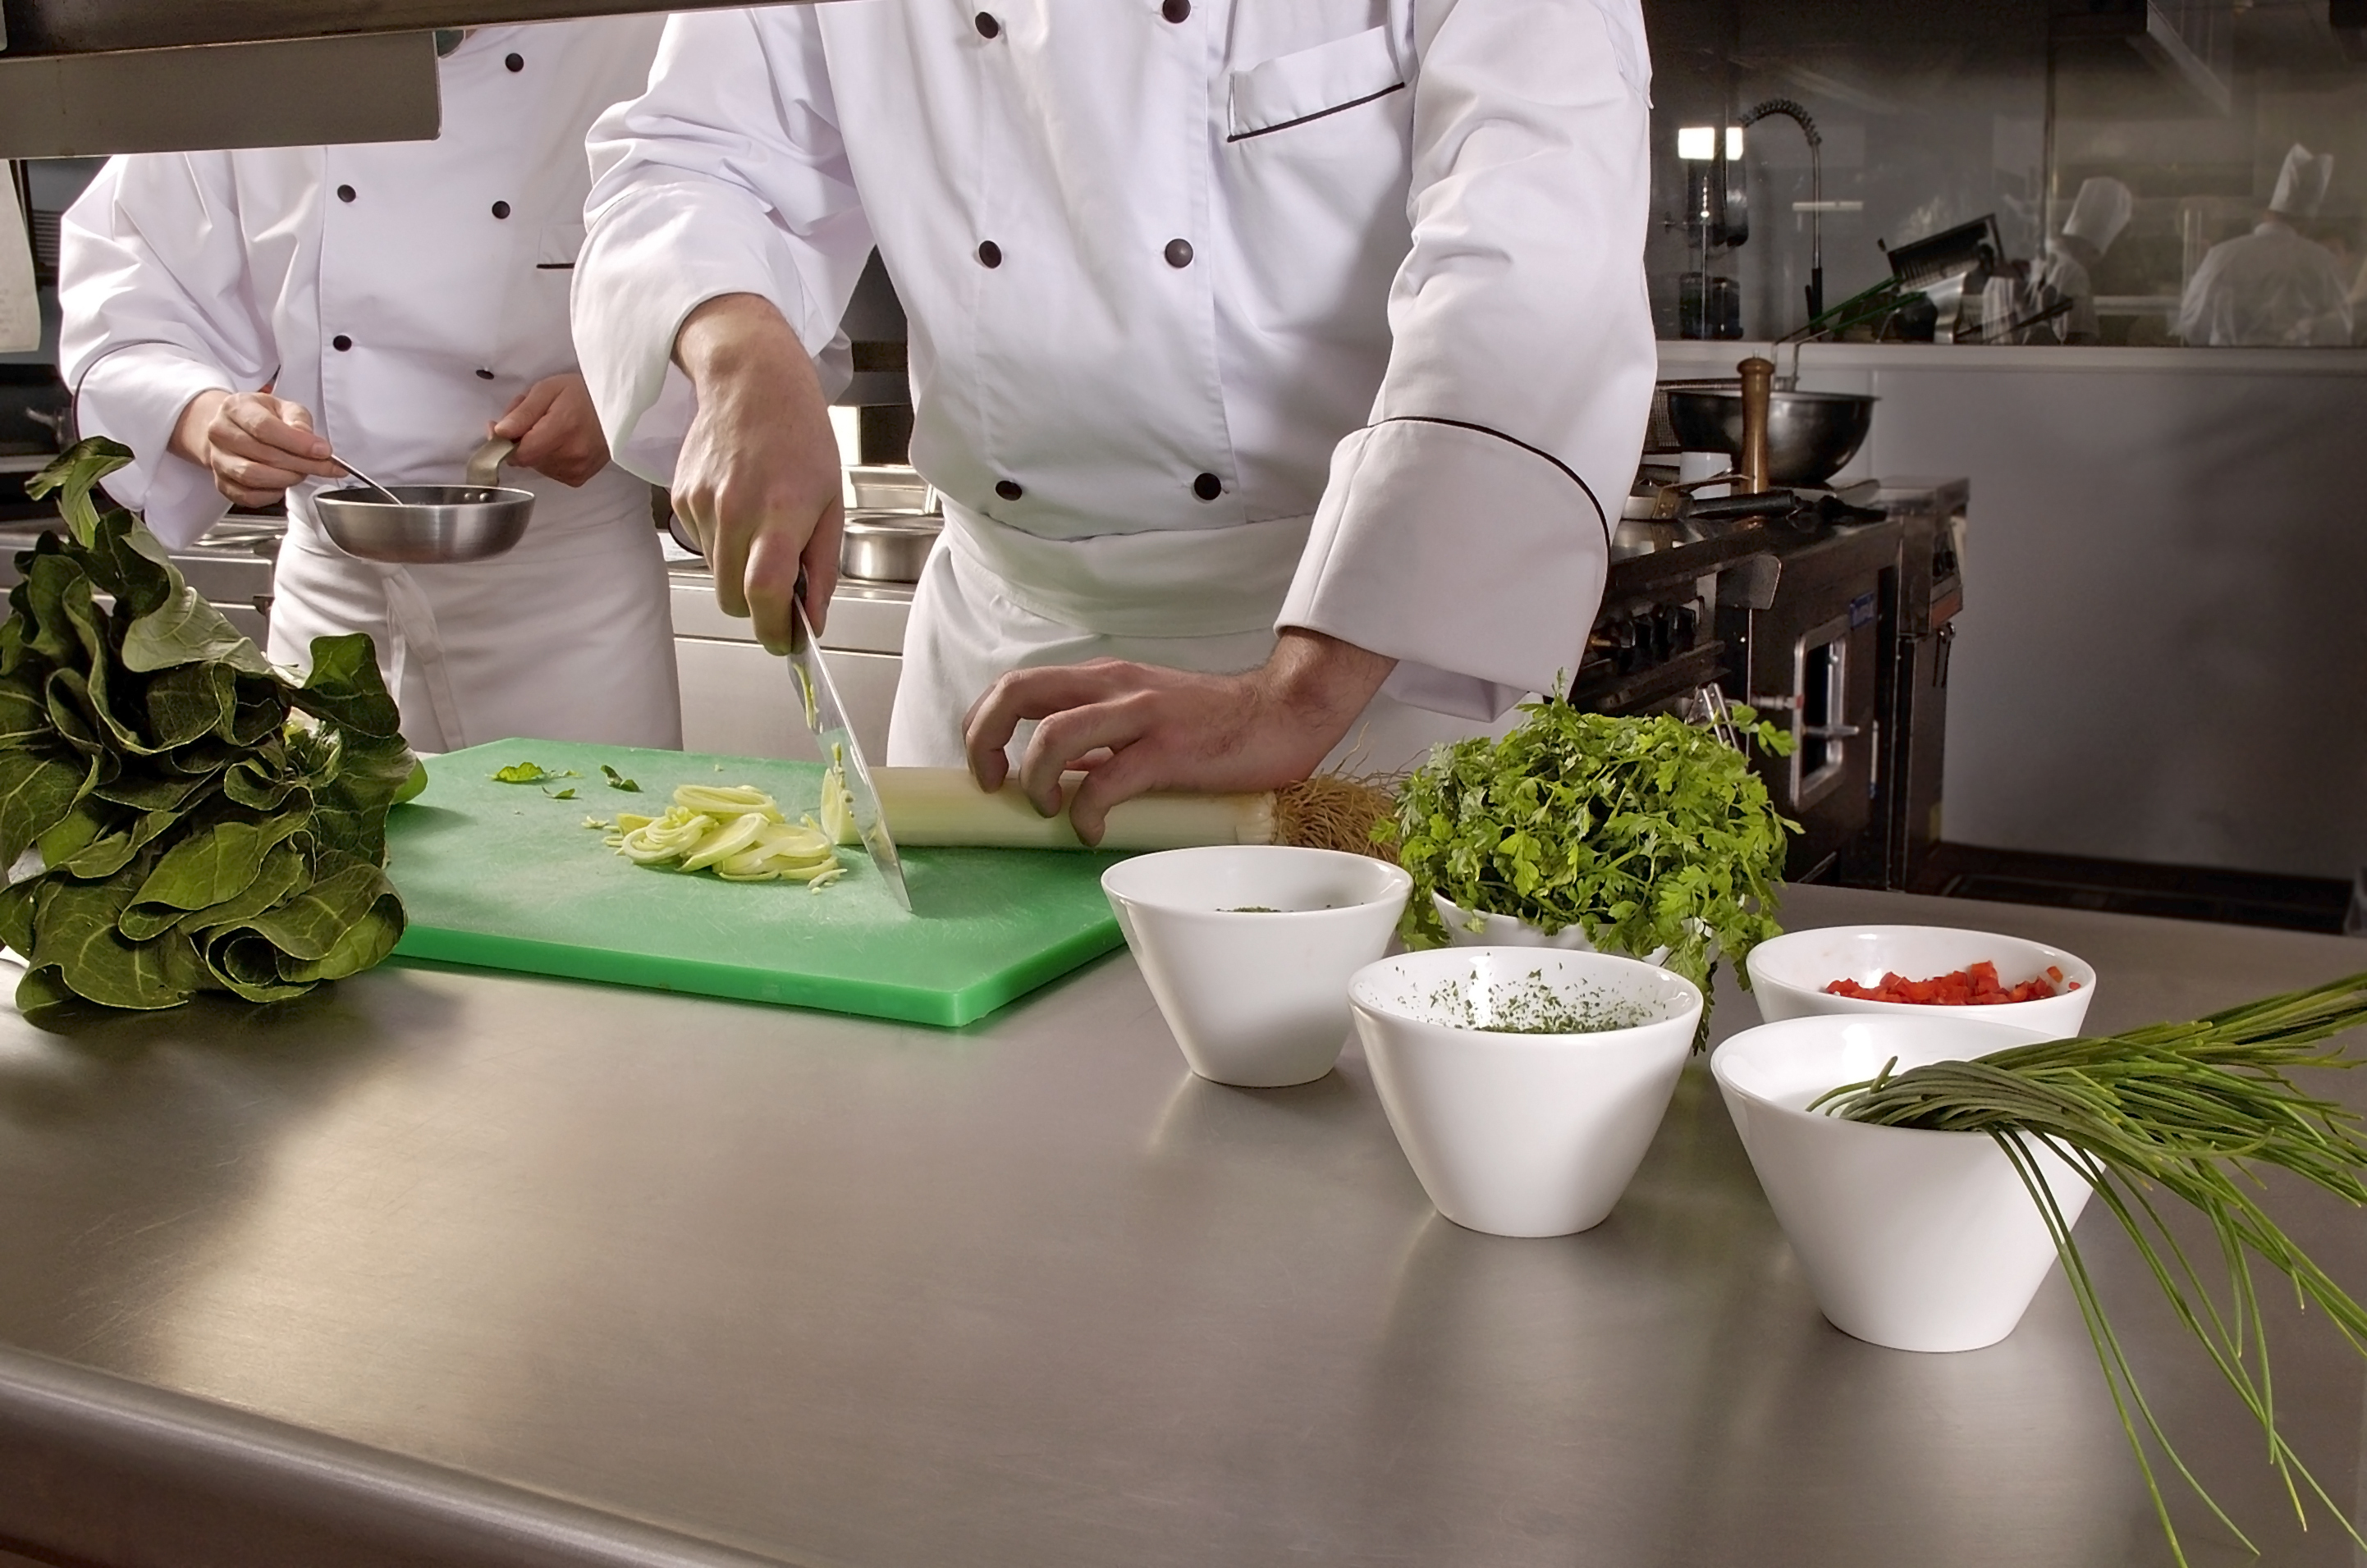 Kitchen With Food basic food hygiene course - ems and associates health and safety